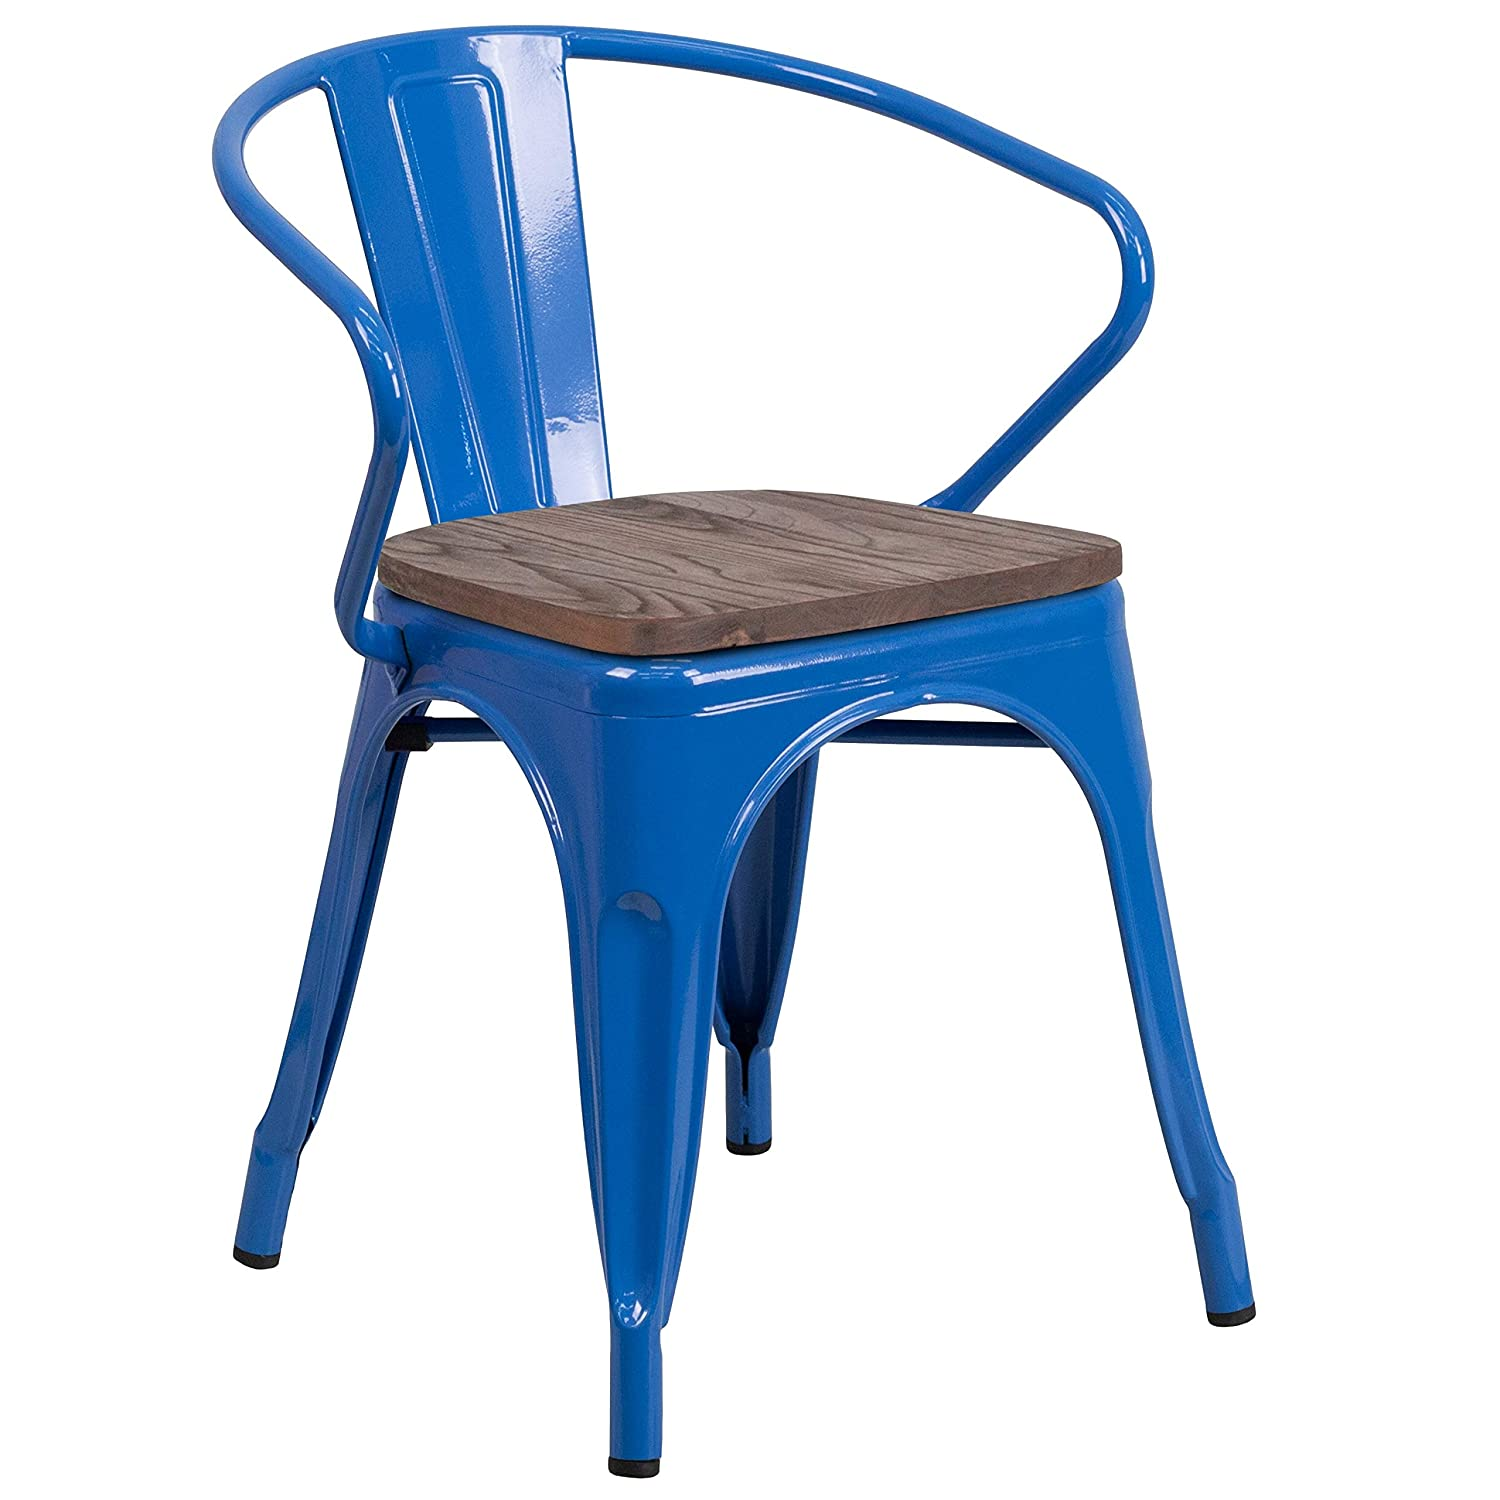 MFO Blue Metal SALENEW very popular Chair with Seat Wood and Arms Max 79% OFF